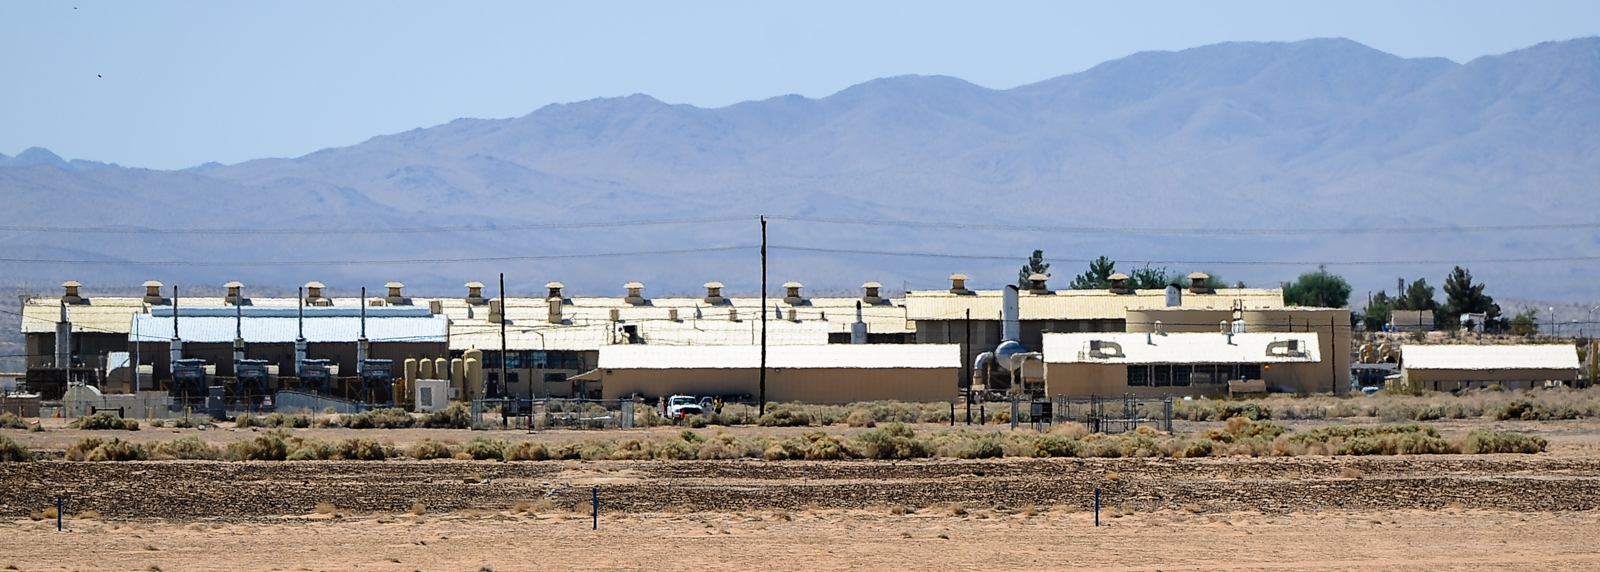 . A distant view of the Pacific Gas & Electric compressor station in Hinkley, Calif. on Thursday, May 2, 2013. (Rachel Luna / San Bernardino Sun)